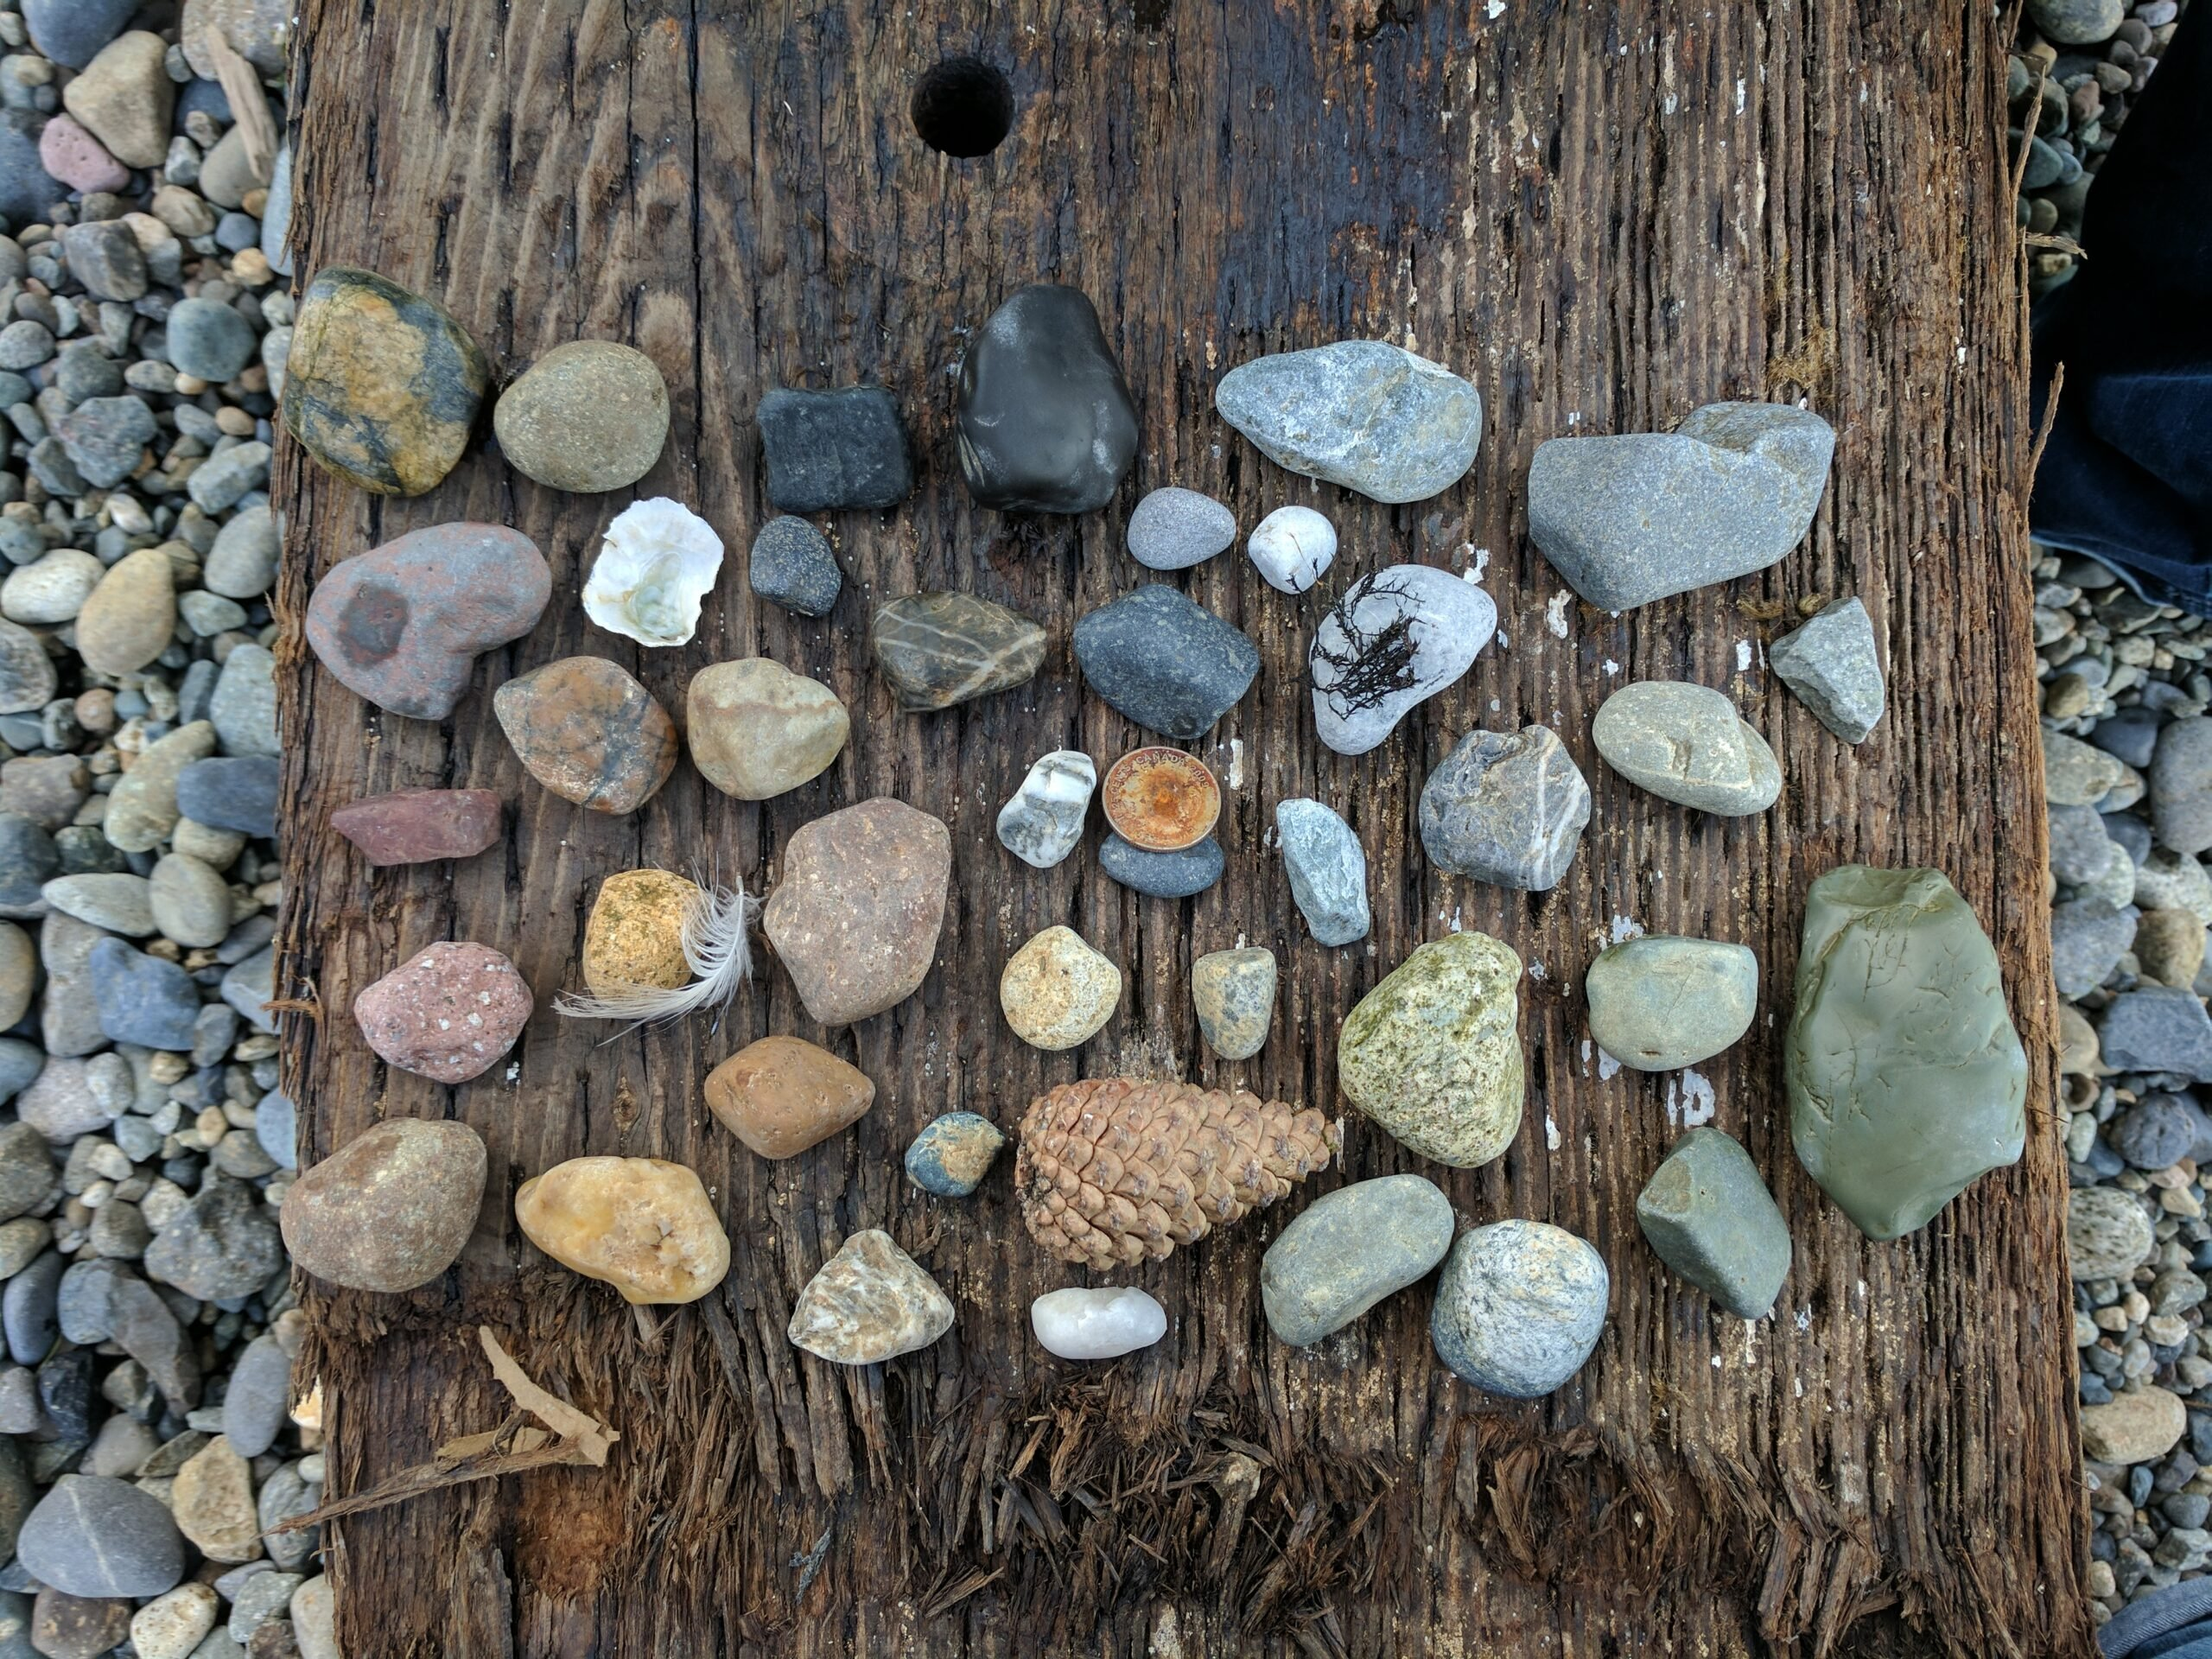 An assortment of rocks found on the pocket beaches of downtown seattle.